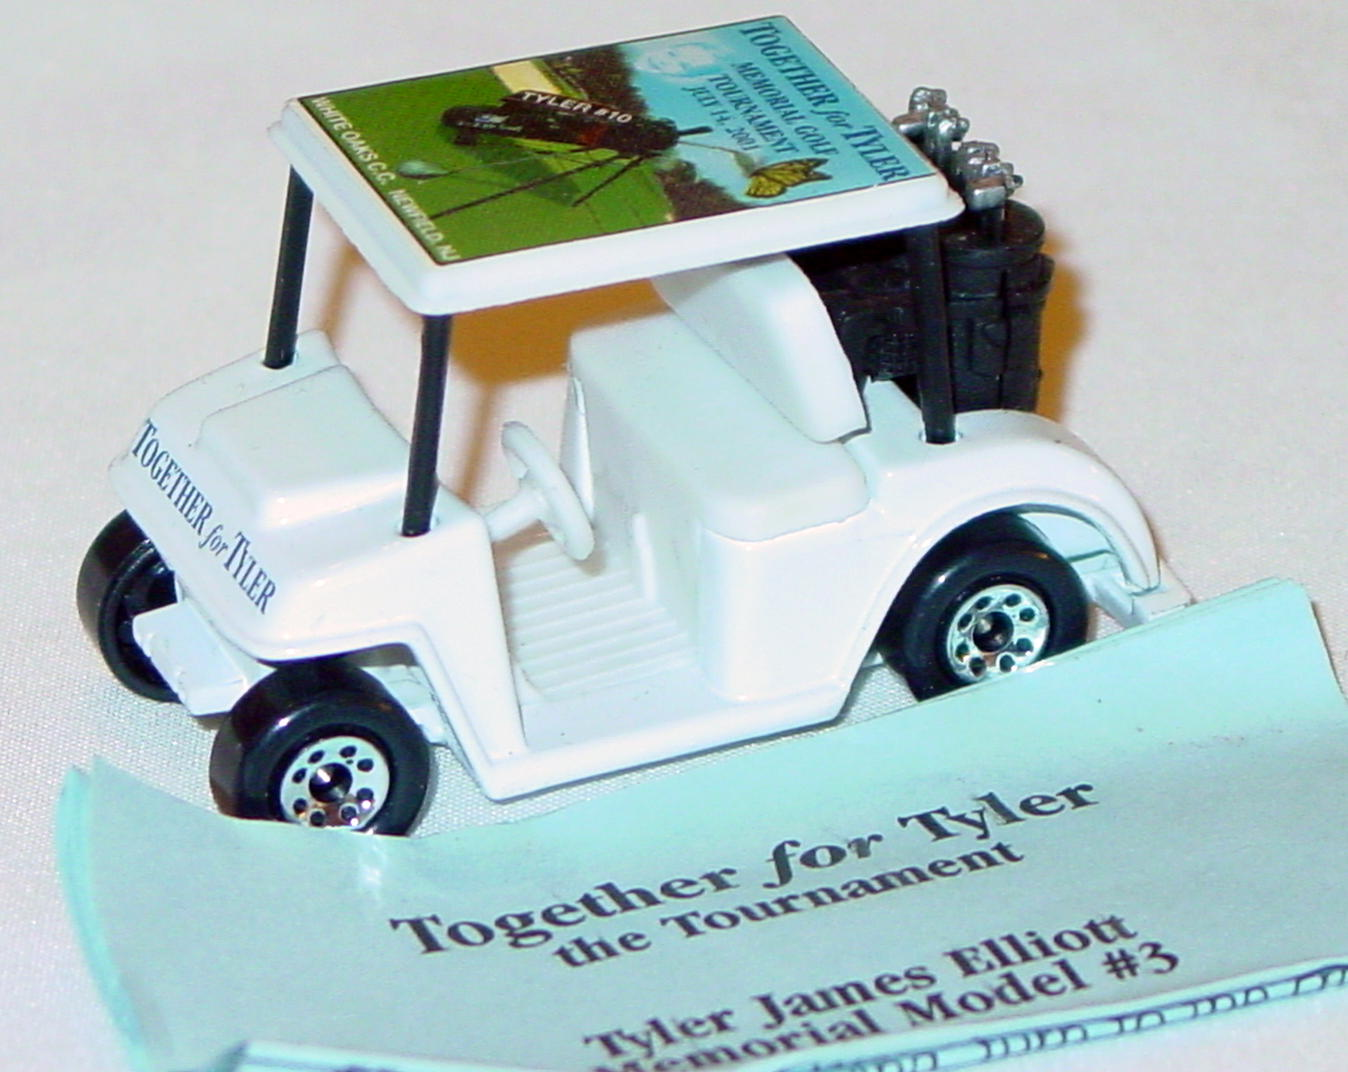 ASAP-CCI 75 J 8 - Golf Cart White Together for Tyler CCI